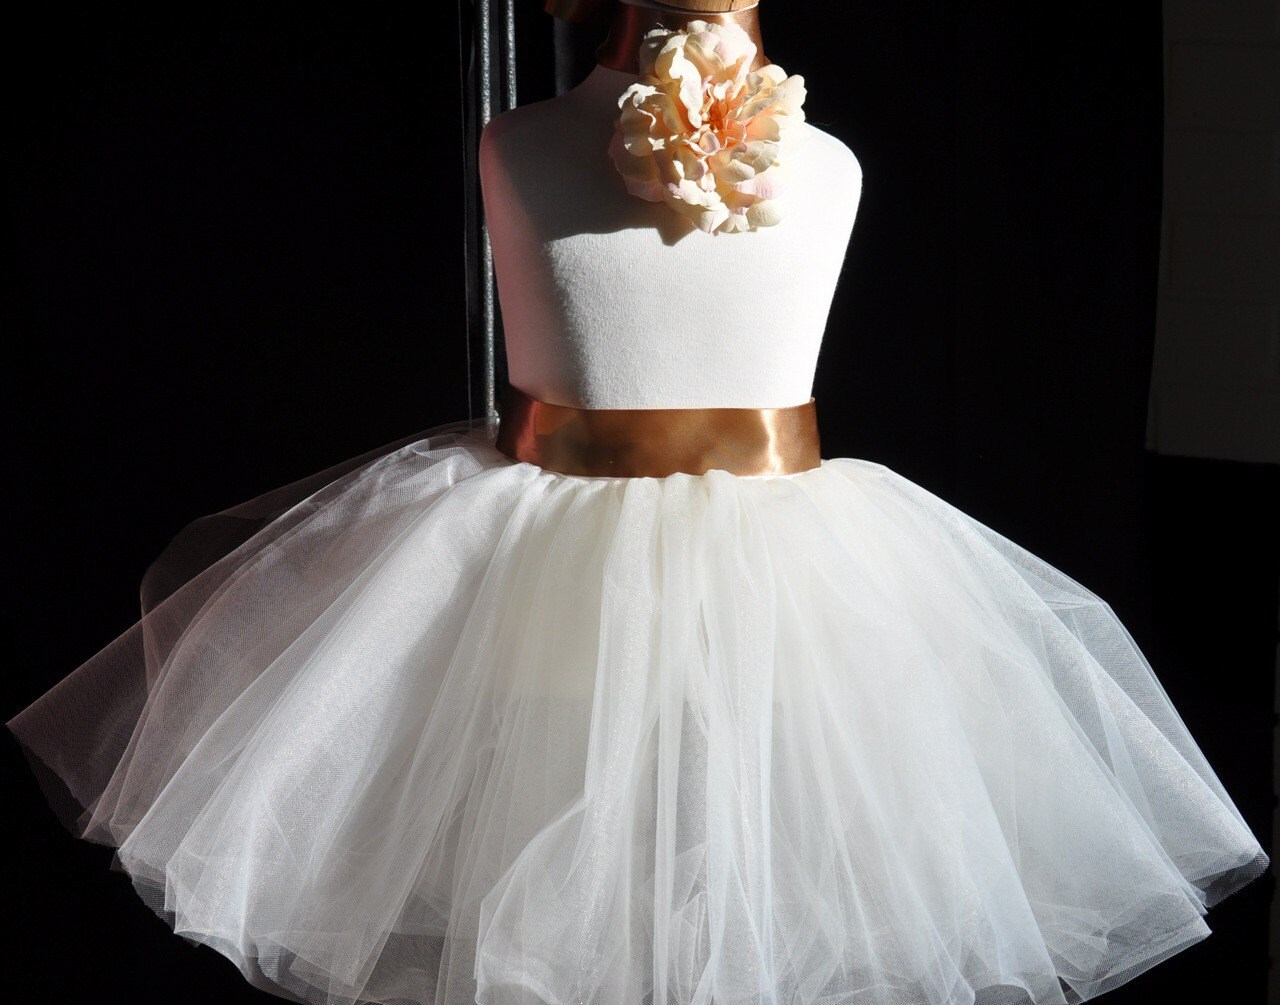 Ivory Sewn Tutu with Cocoa Satin Ribbon  Weddings, Ballet, Dress up ENTIRELY SEWN NO KNOTS